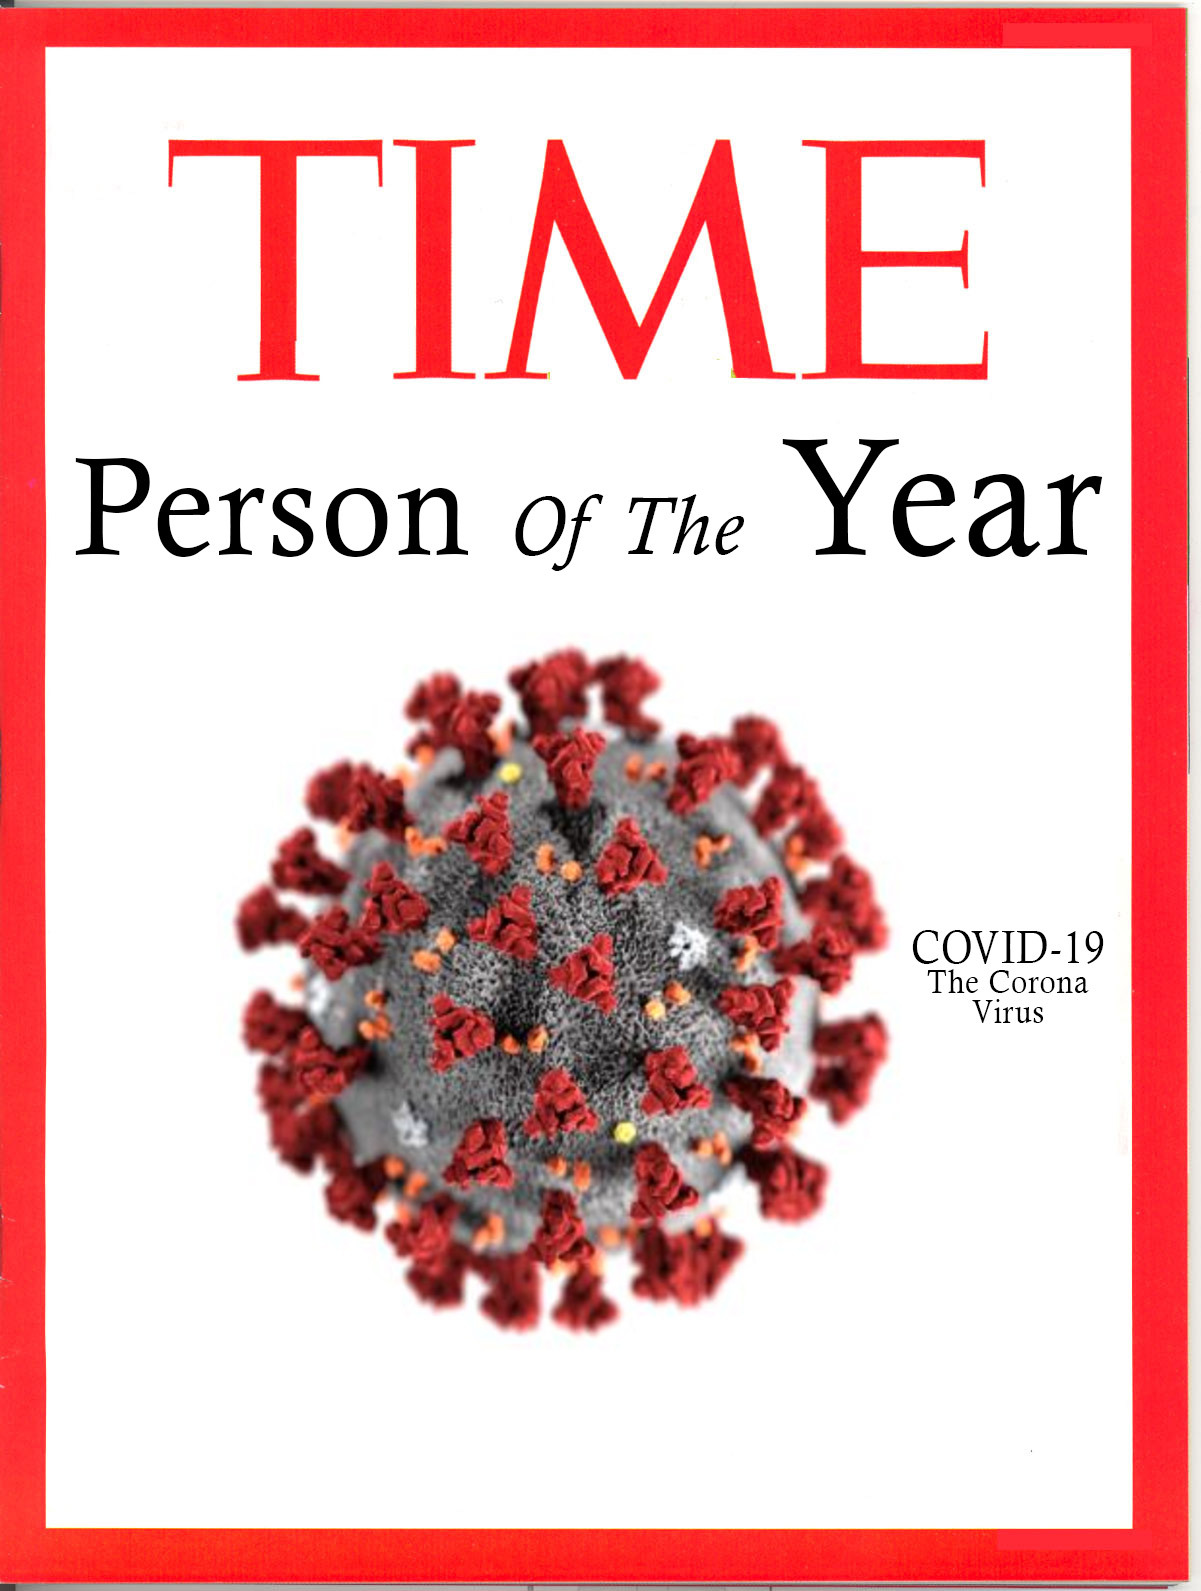 Person of the Year - meme